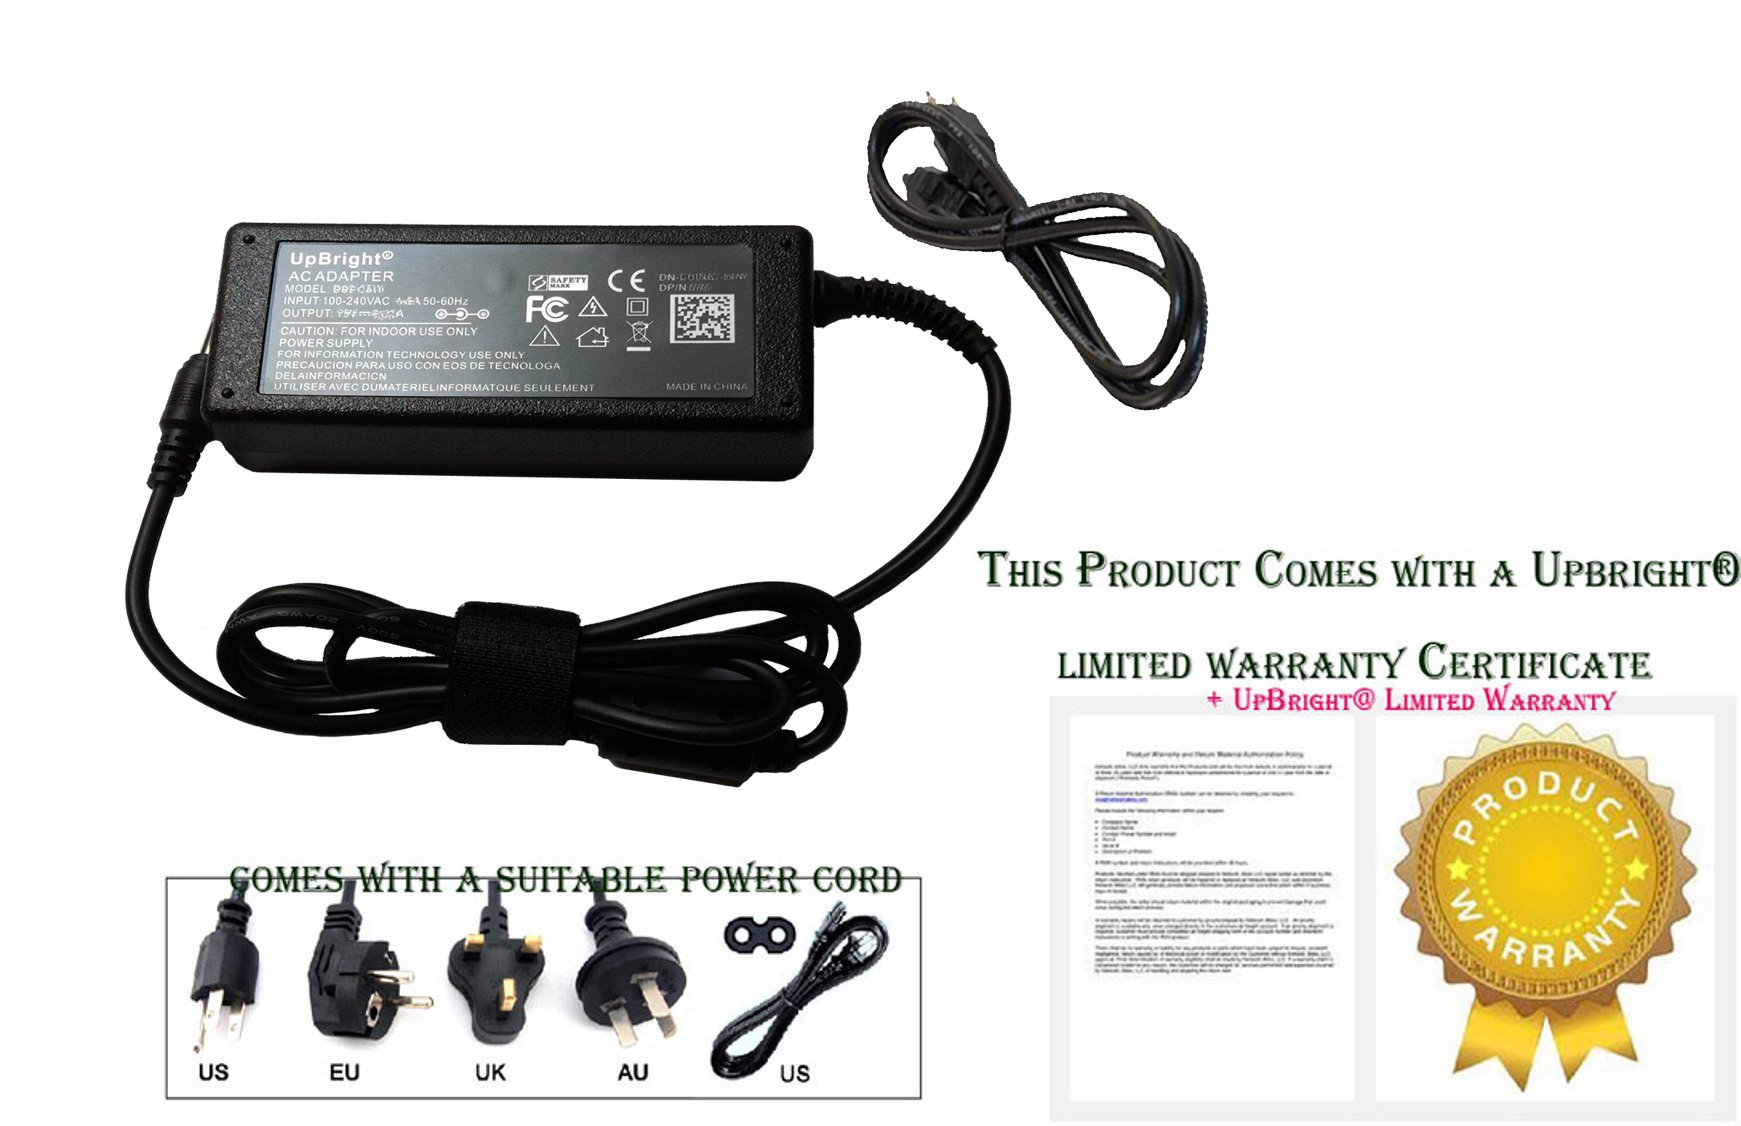 UpBright NEW Global AC / DC Adapter For Motion Computing C5m F5m CFT-004 10.4'' Tablet PC Power Supply Cord Cable PS Battery Charger Mains PSU by UPBRIGHT